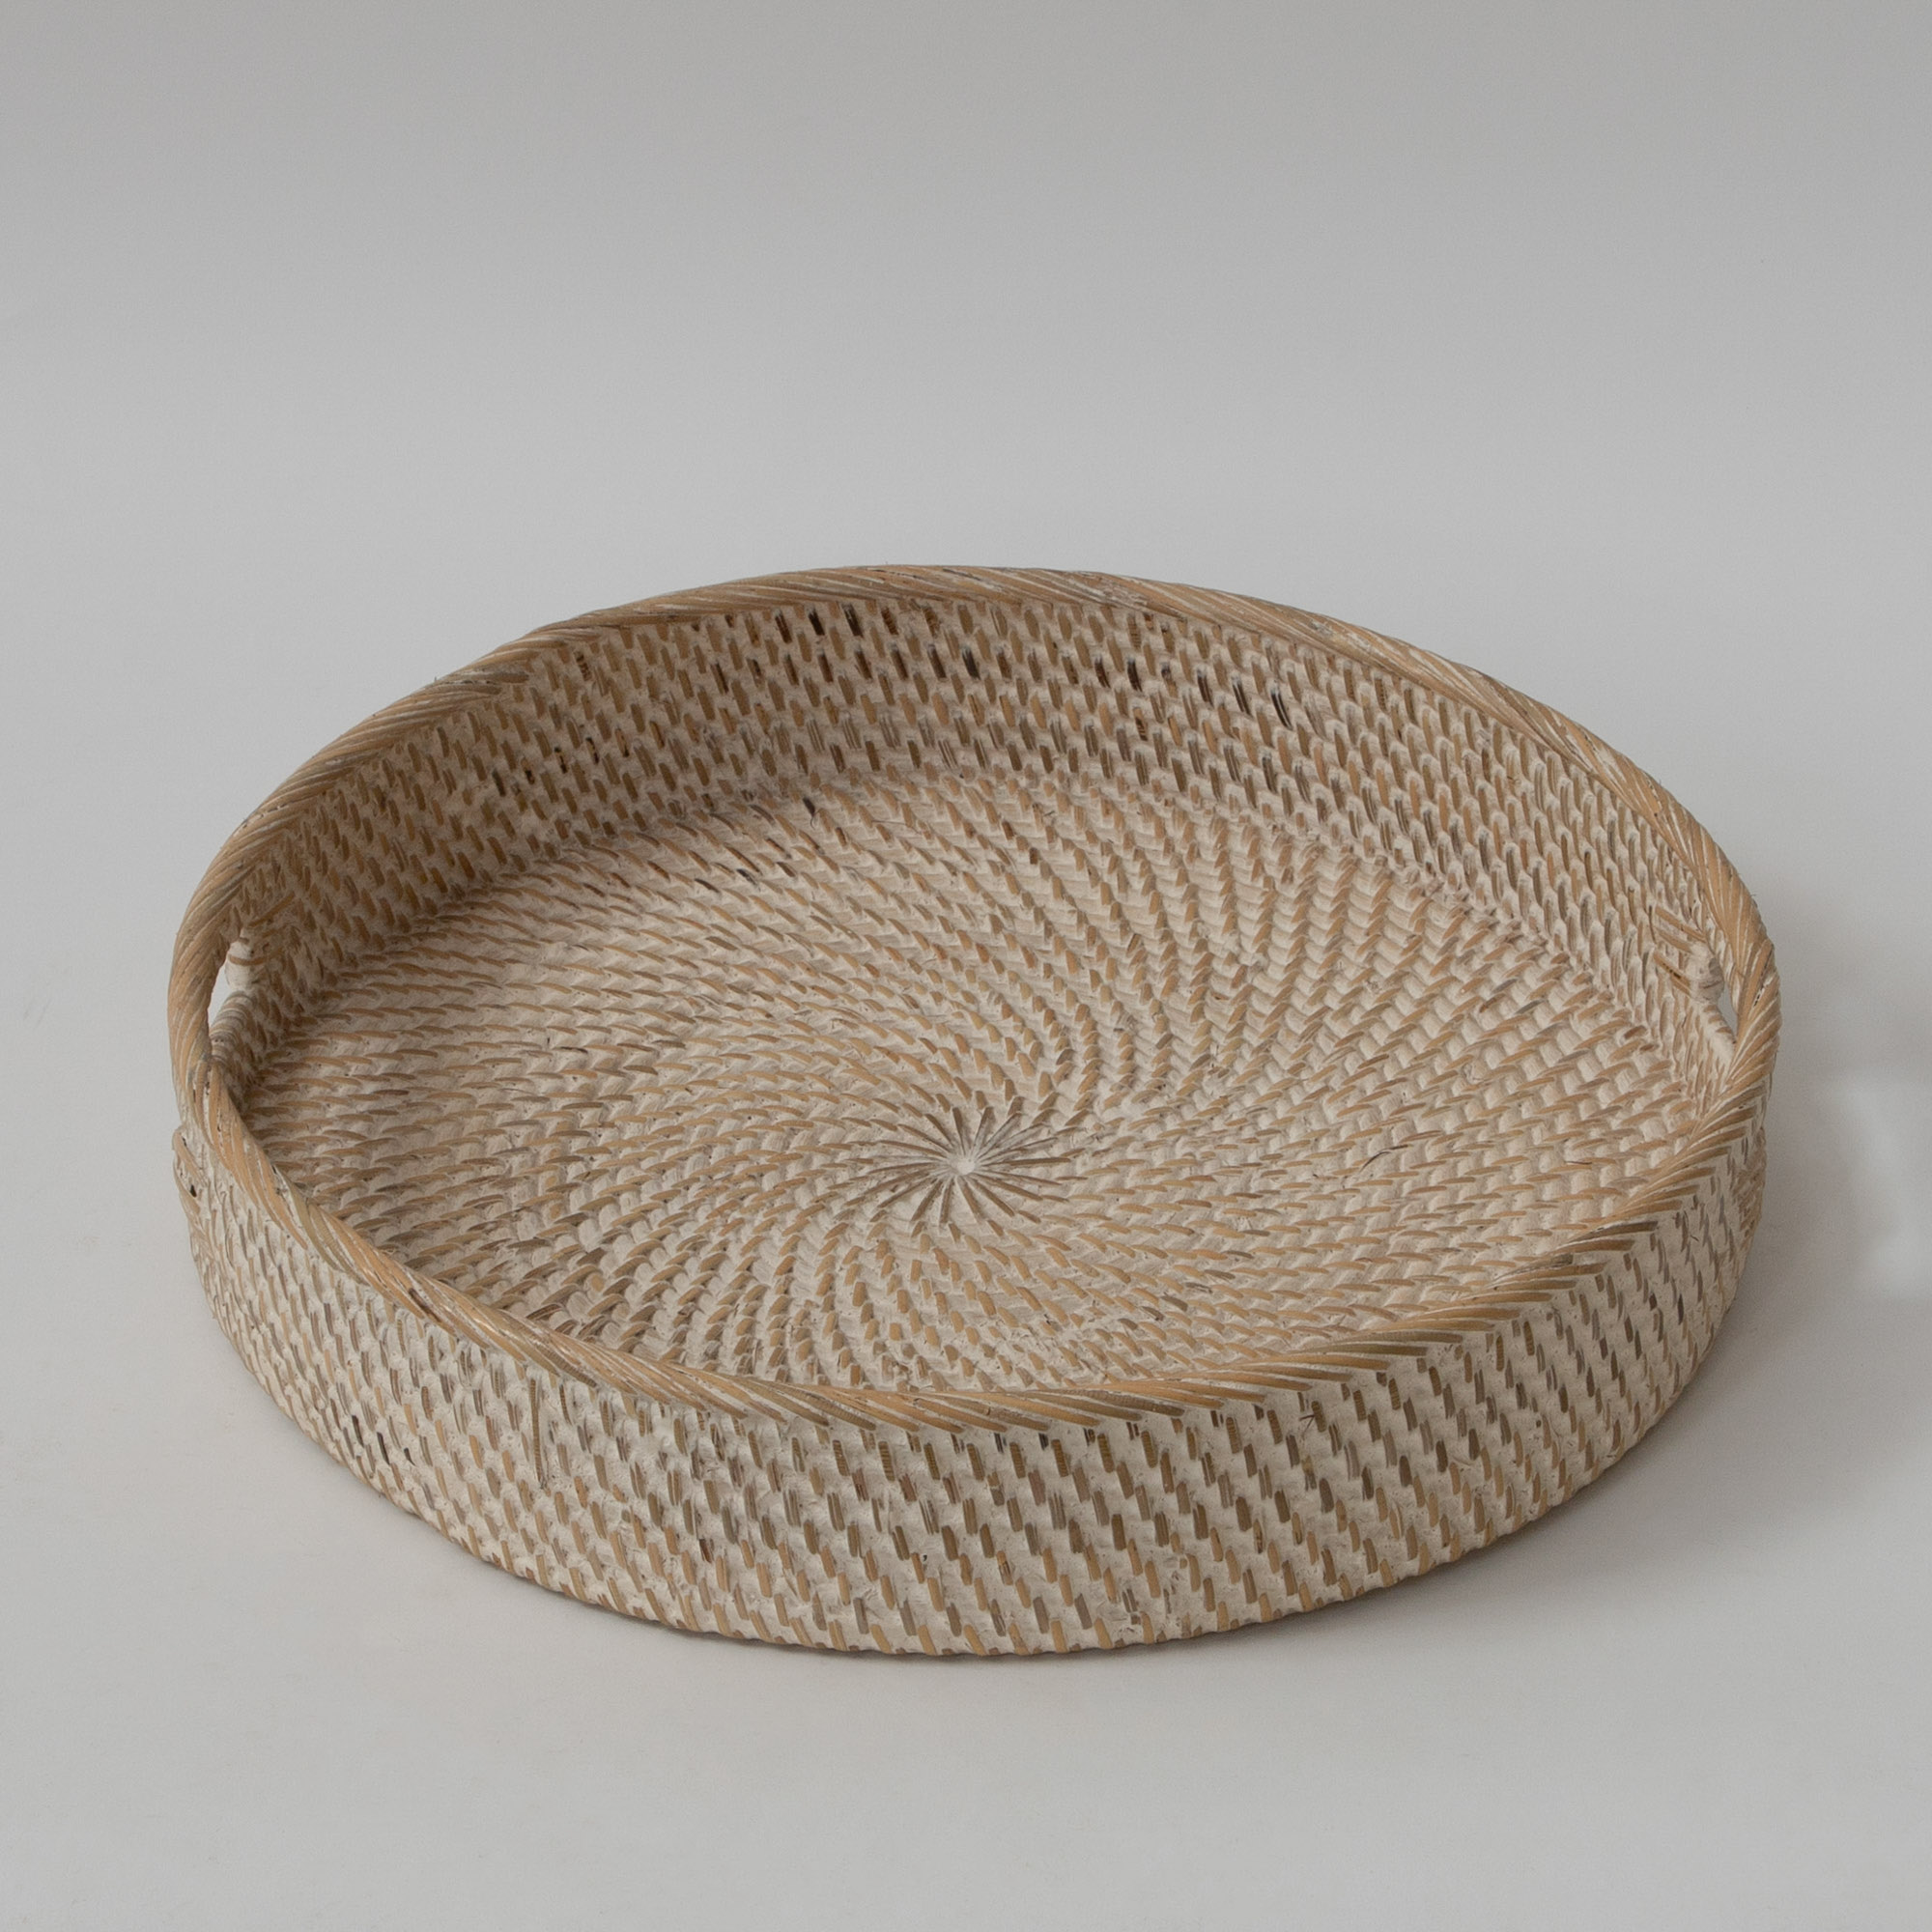 Hata Rattan Round Serving Tray With Handles – Beach Sand